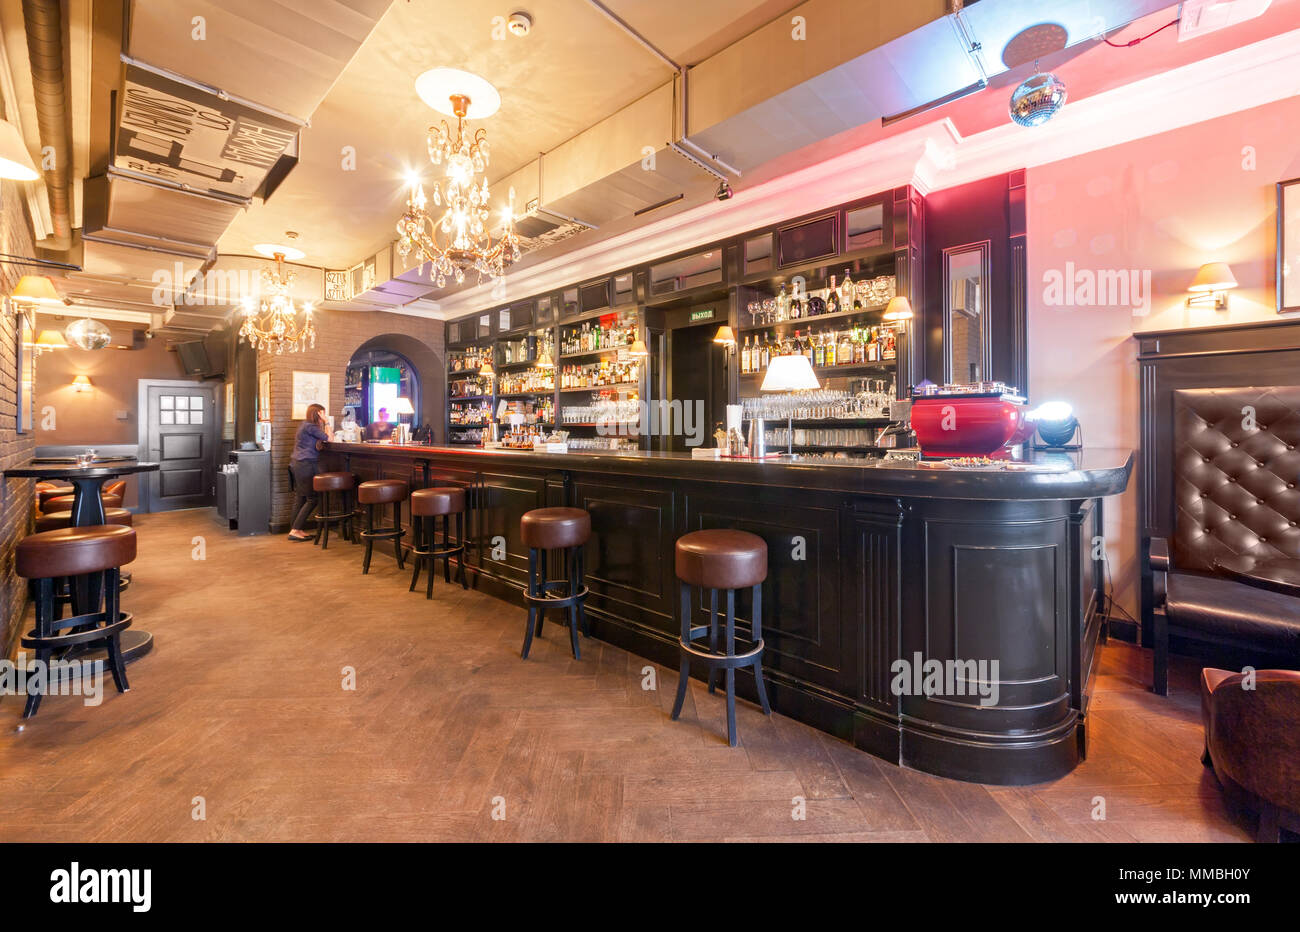 MOSCOW - AUGUST 2014: Interior of a small \